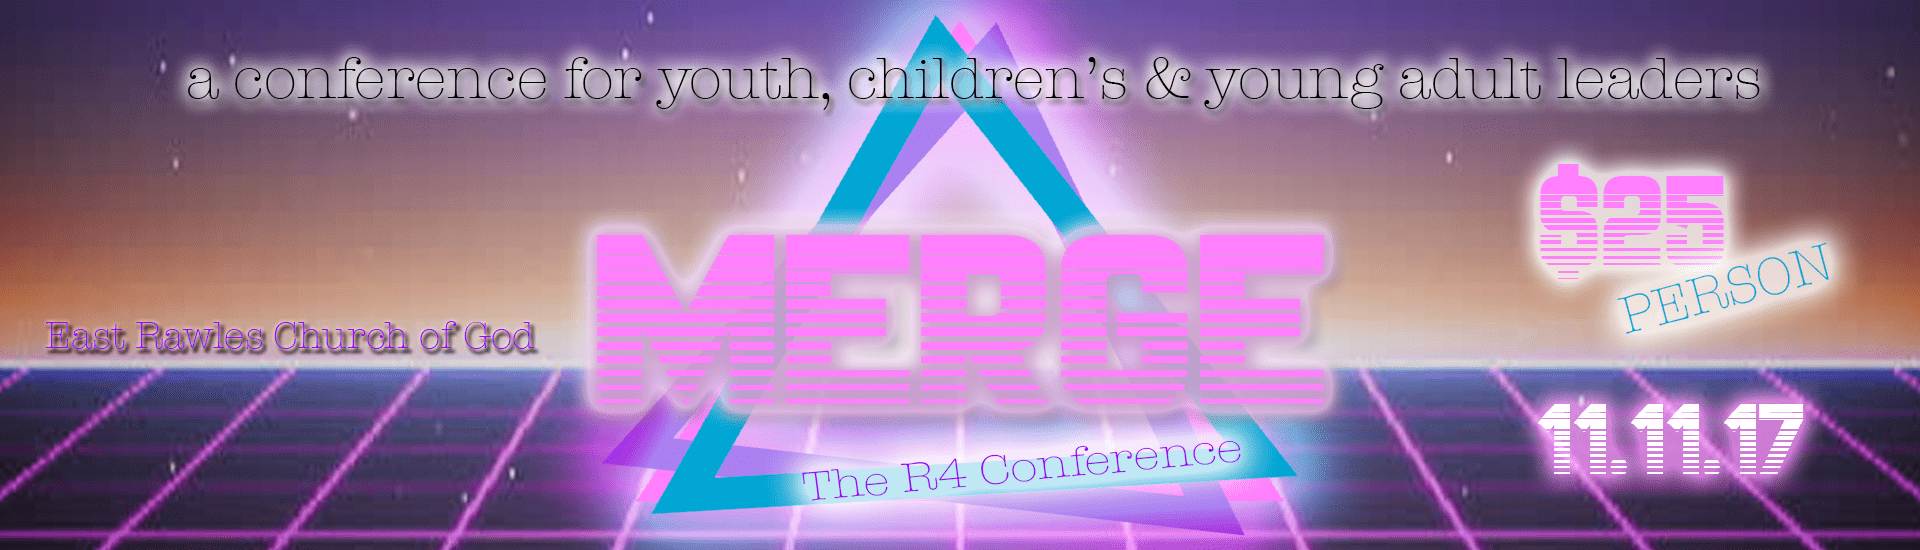 R4 Conference